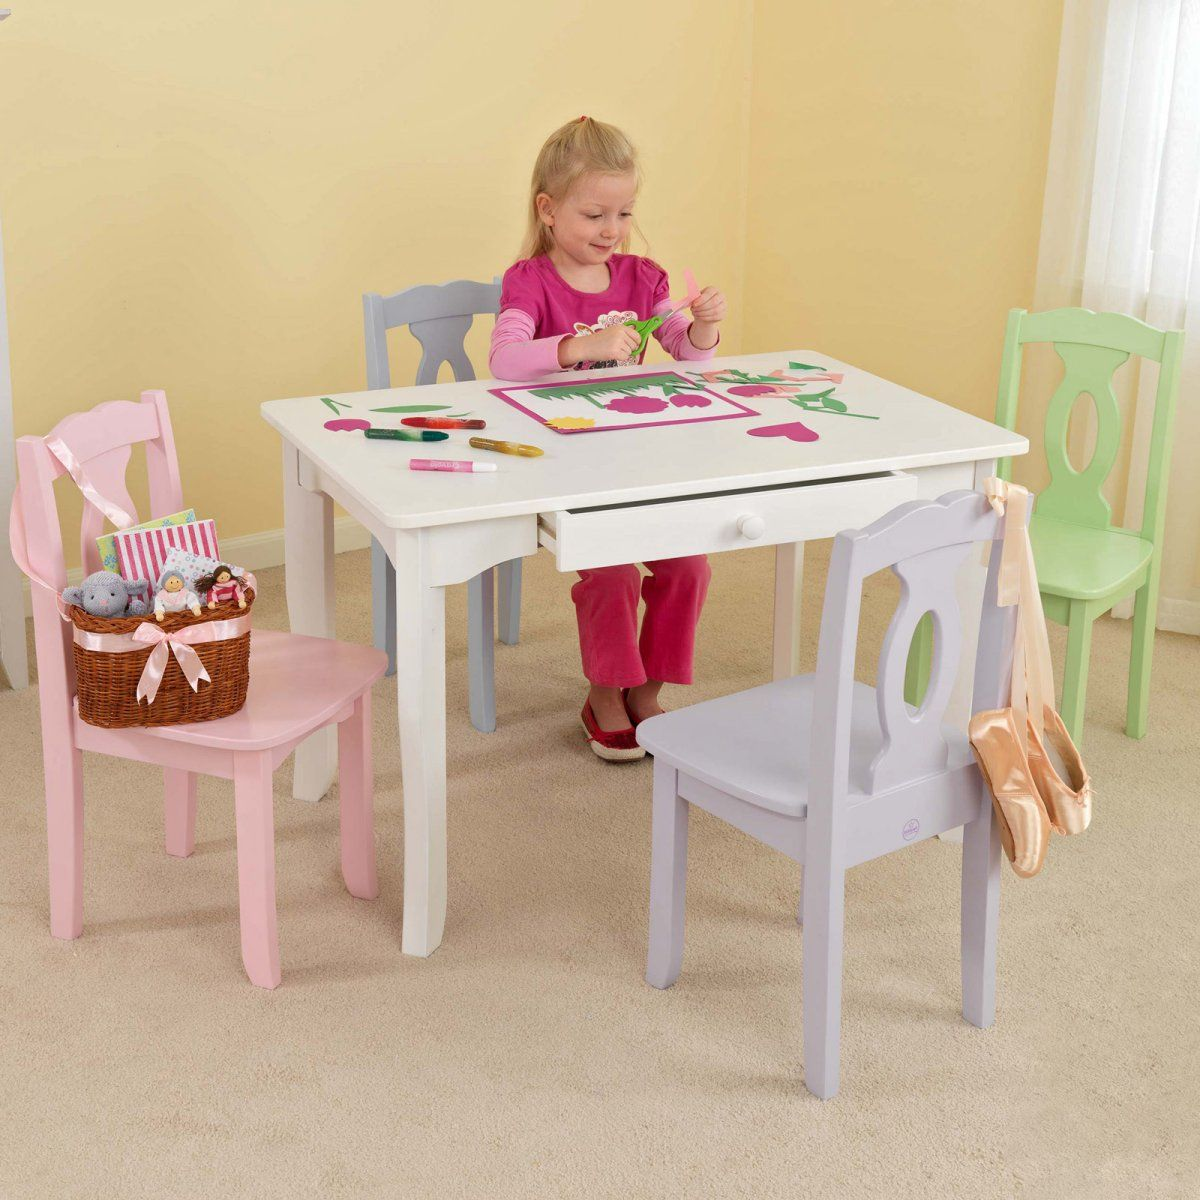 kidkraft white table and chairs wing chair covers canada brighton create your own set childrens sets at tables